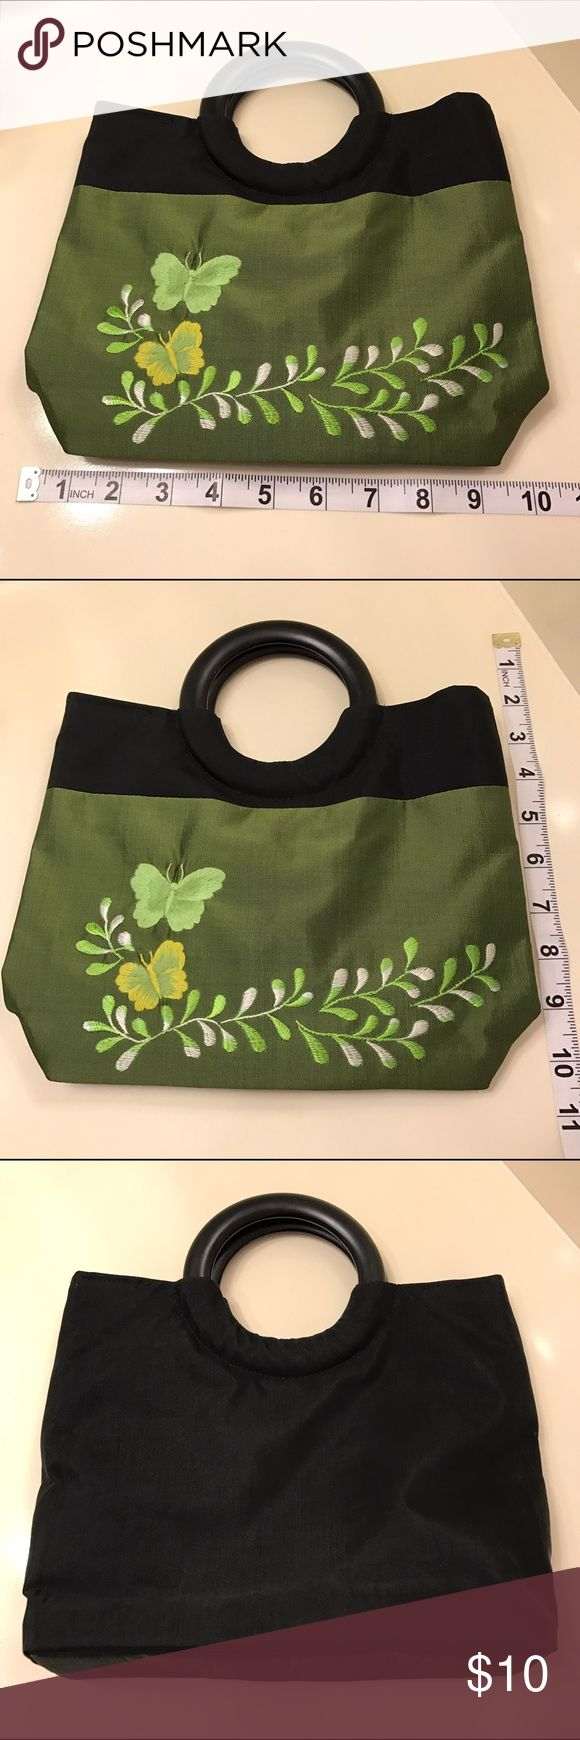 Cute Embroidered Bag Cute embroidered handbag with butterfly design. Chartreuse color in front. Black colored material in back. Plastic handles. 2 open interior pockets. 1 zippered interior pocket. Purchased in Japan. Never used, no issues. Bags